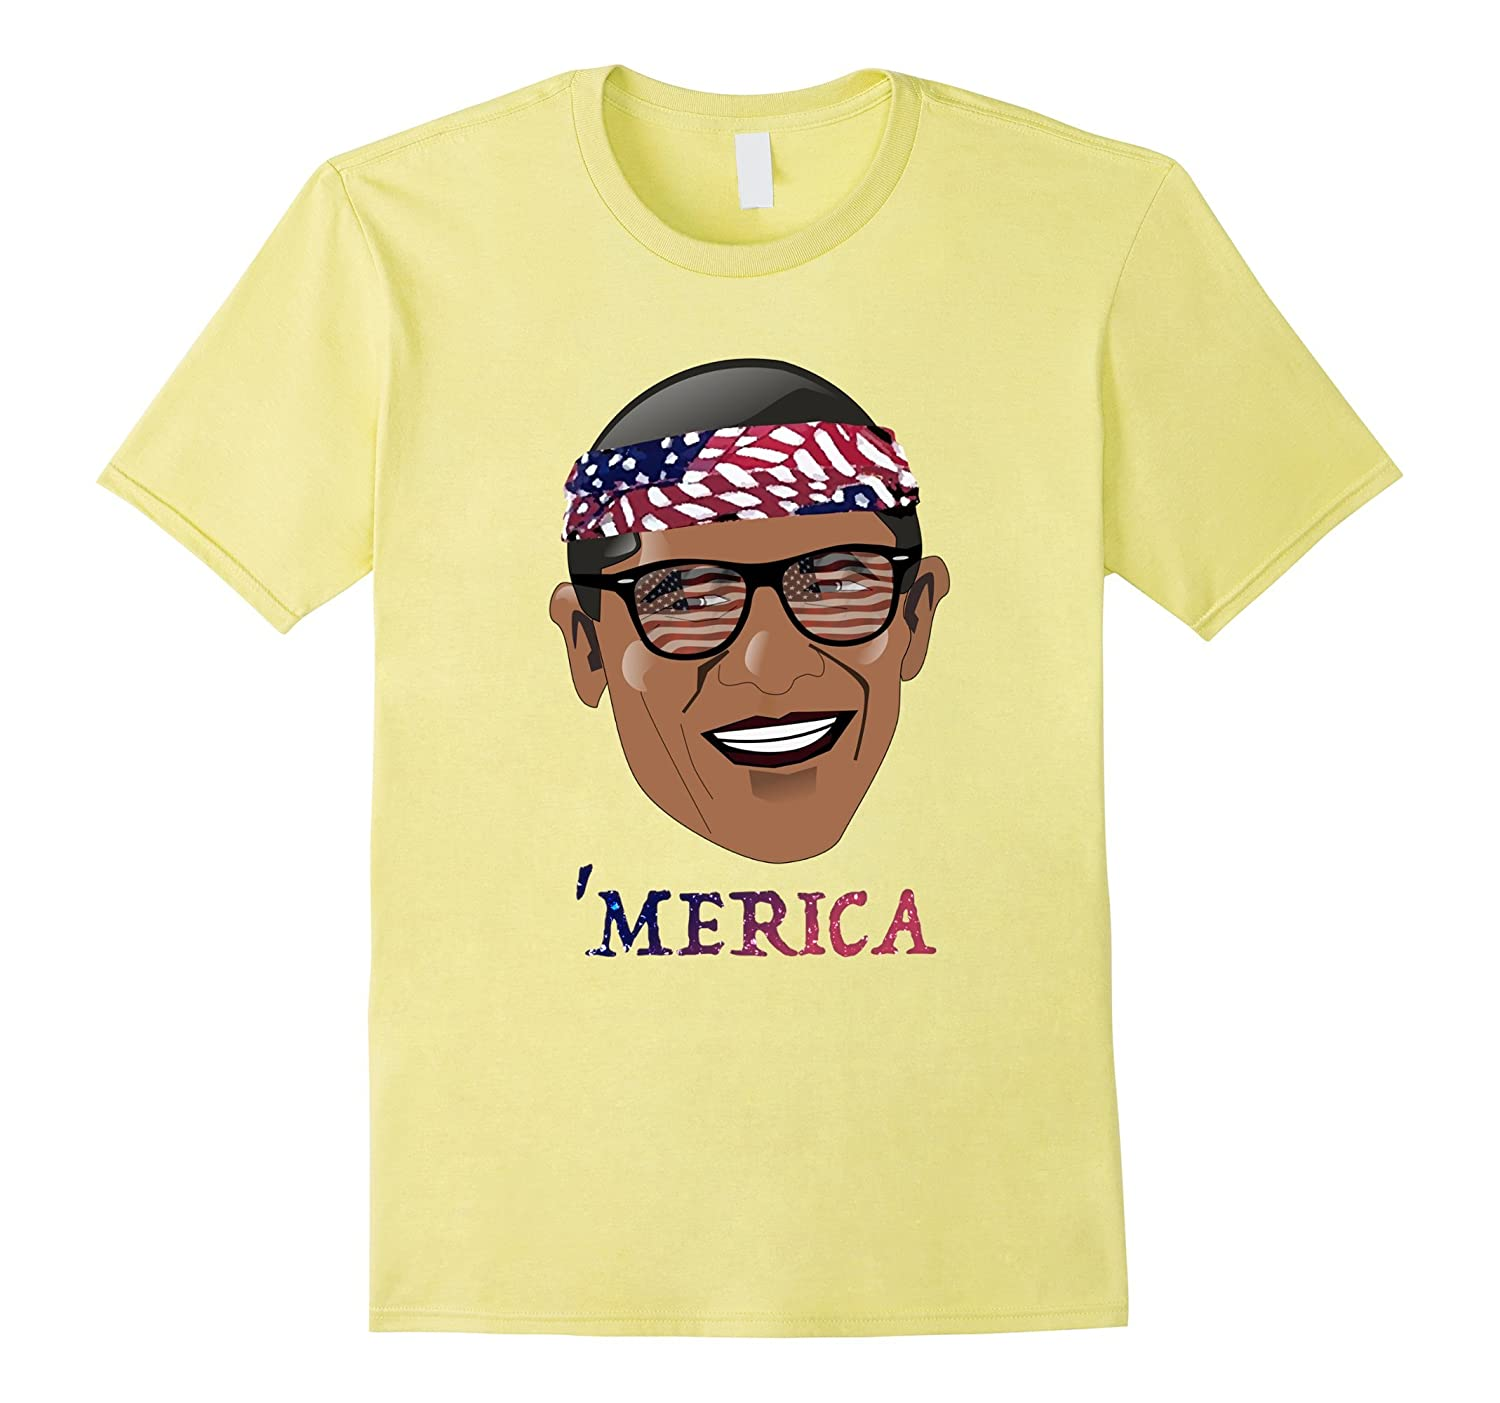 'Merica Barack Obama Patriotic T-Shirt (5 Color Options)